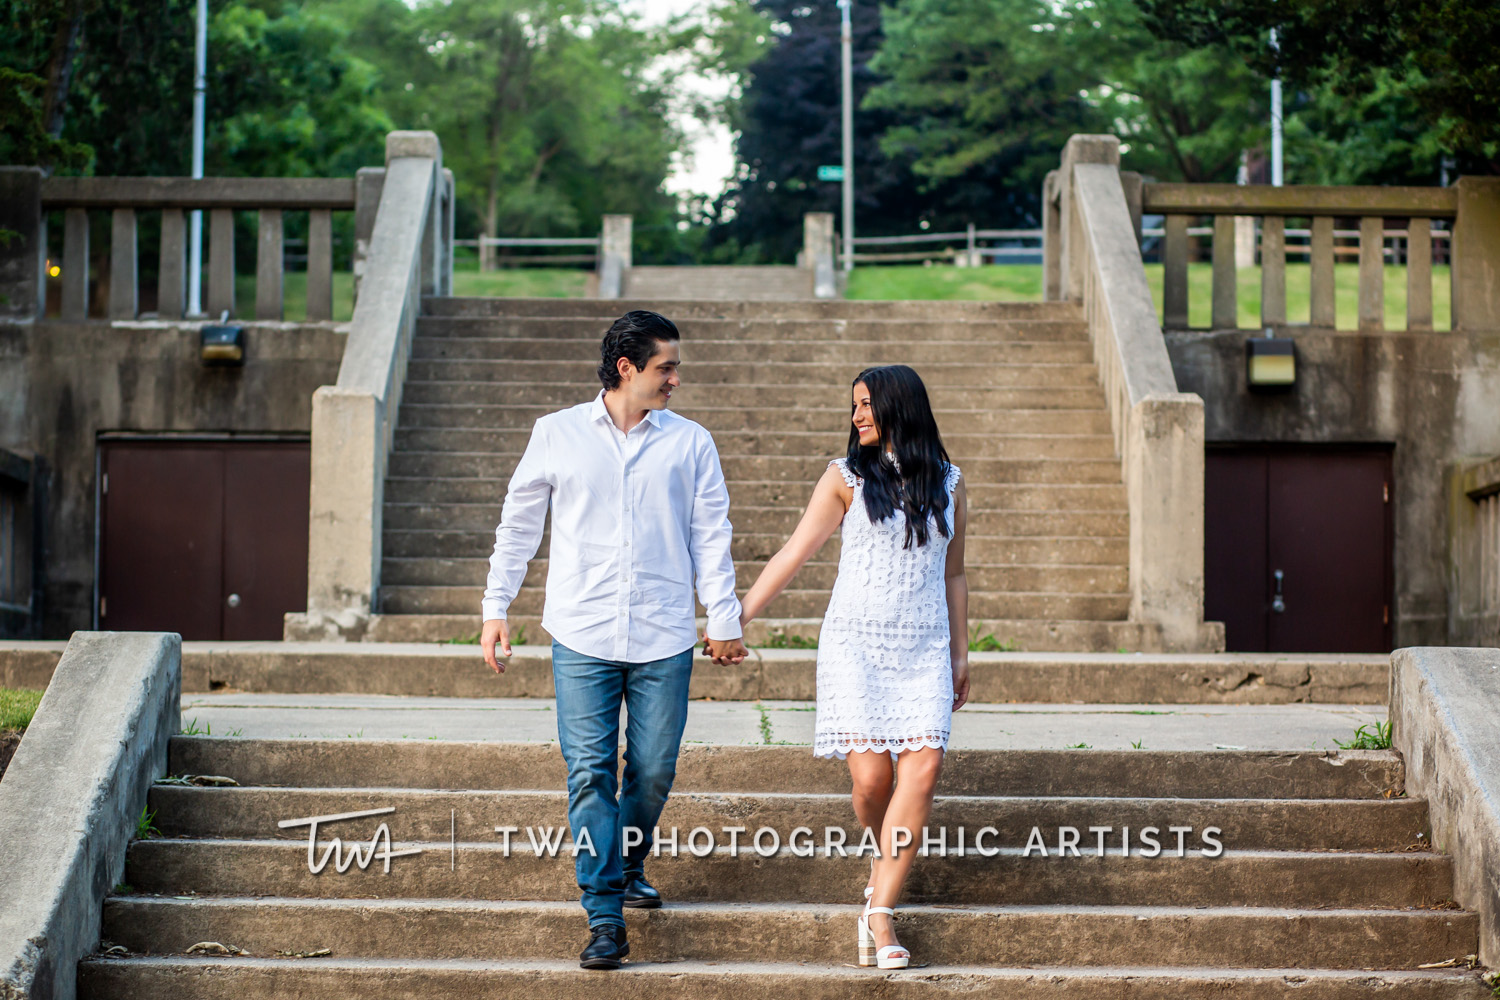 Chicago Wedding Photographers | Alyssa & Alex's St. Charles Engagement Session | TWA Photographic Artists